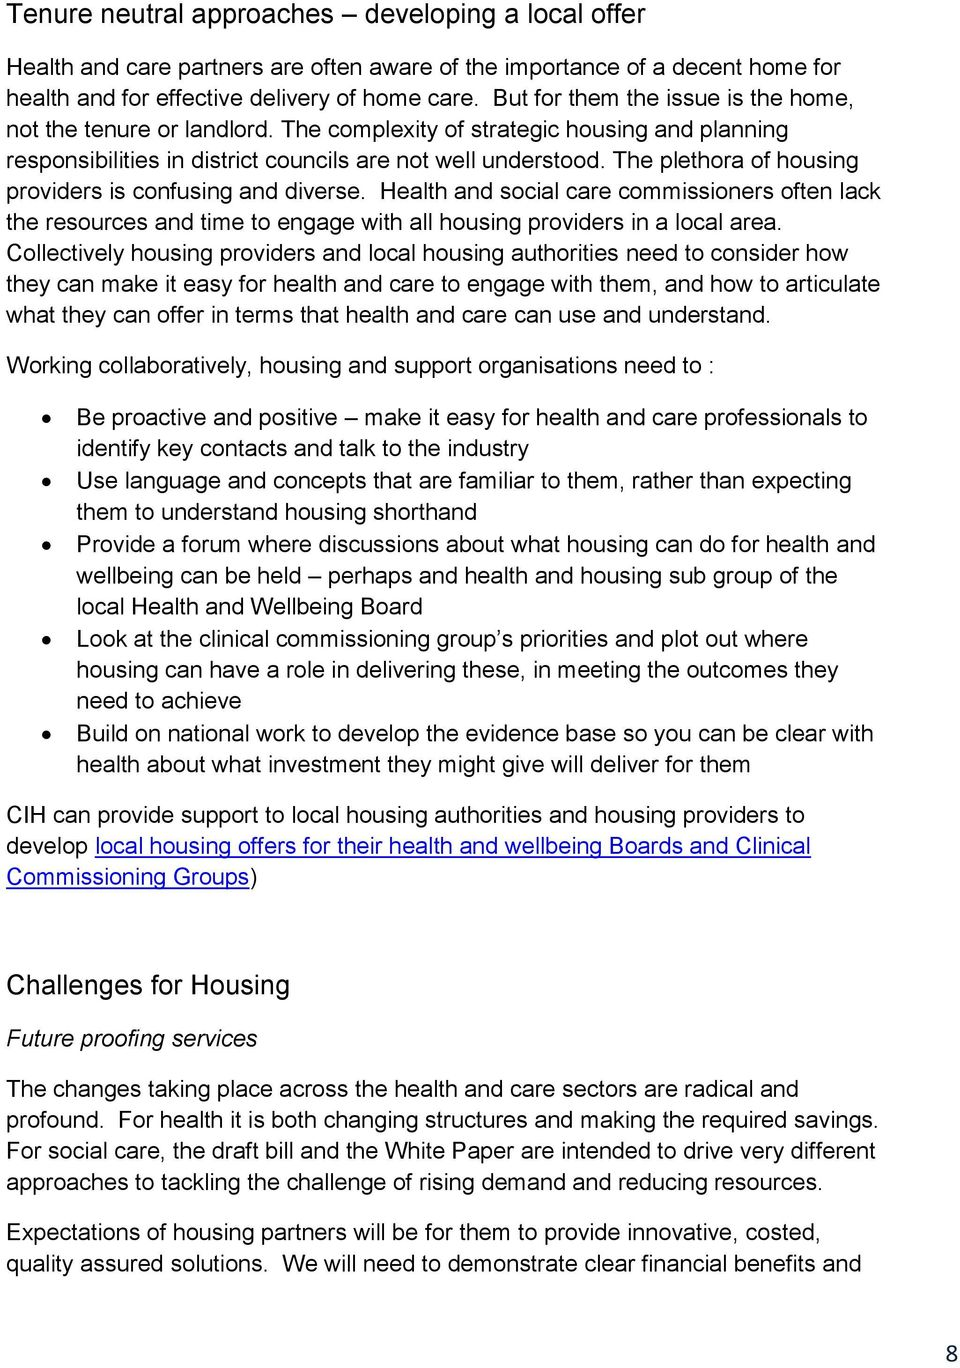 The plethora of housing providers is confusing and diverse. Health and social care commissioners often lack the resources and time to engage with all housing providers in a local area.